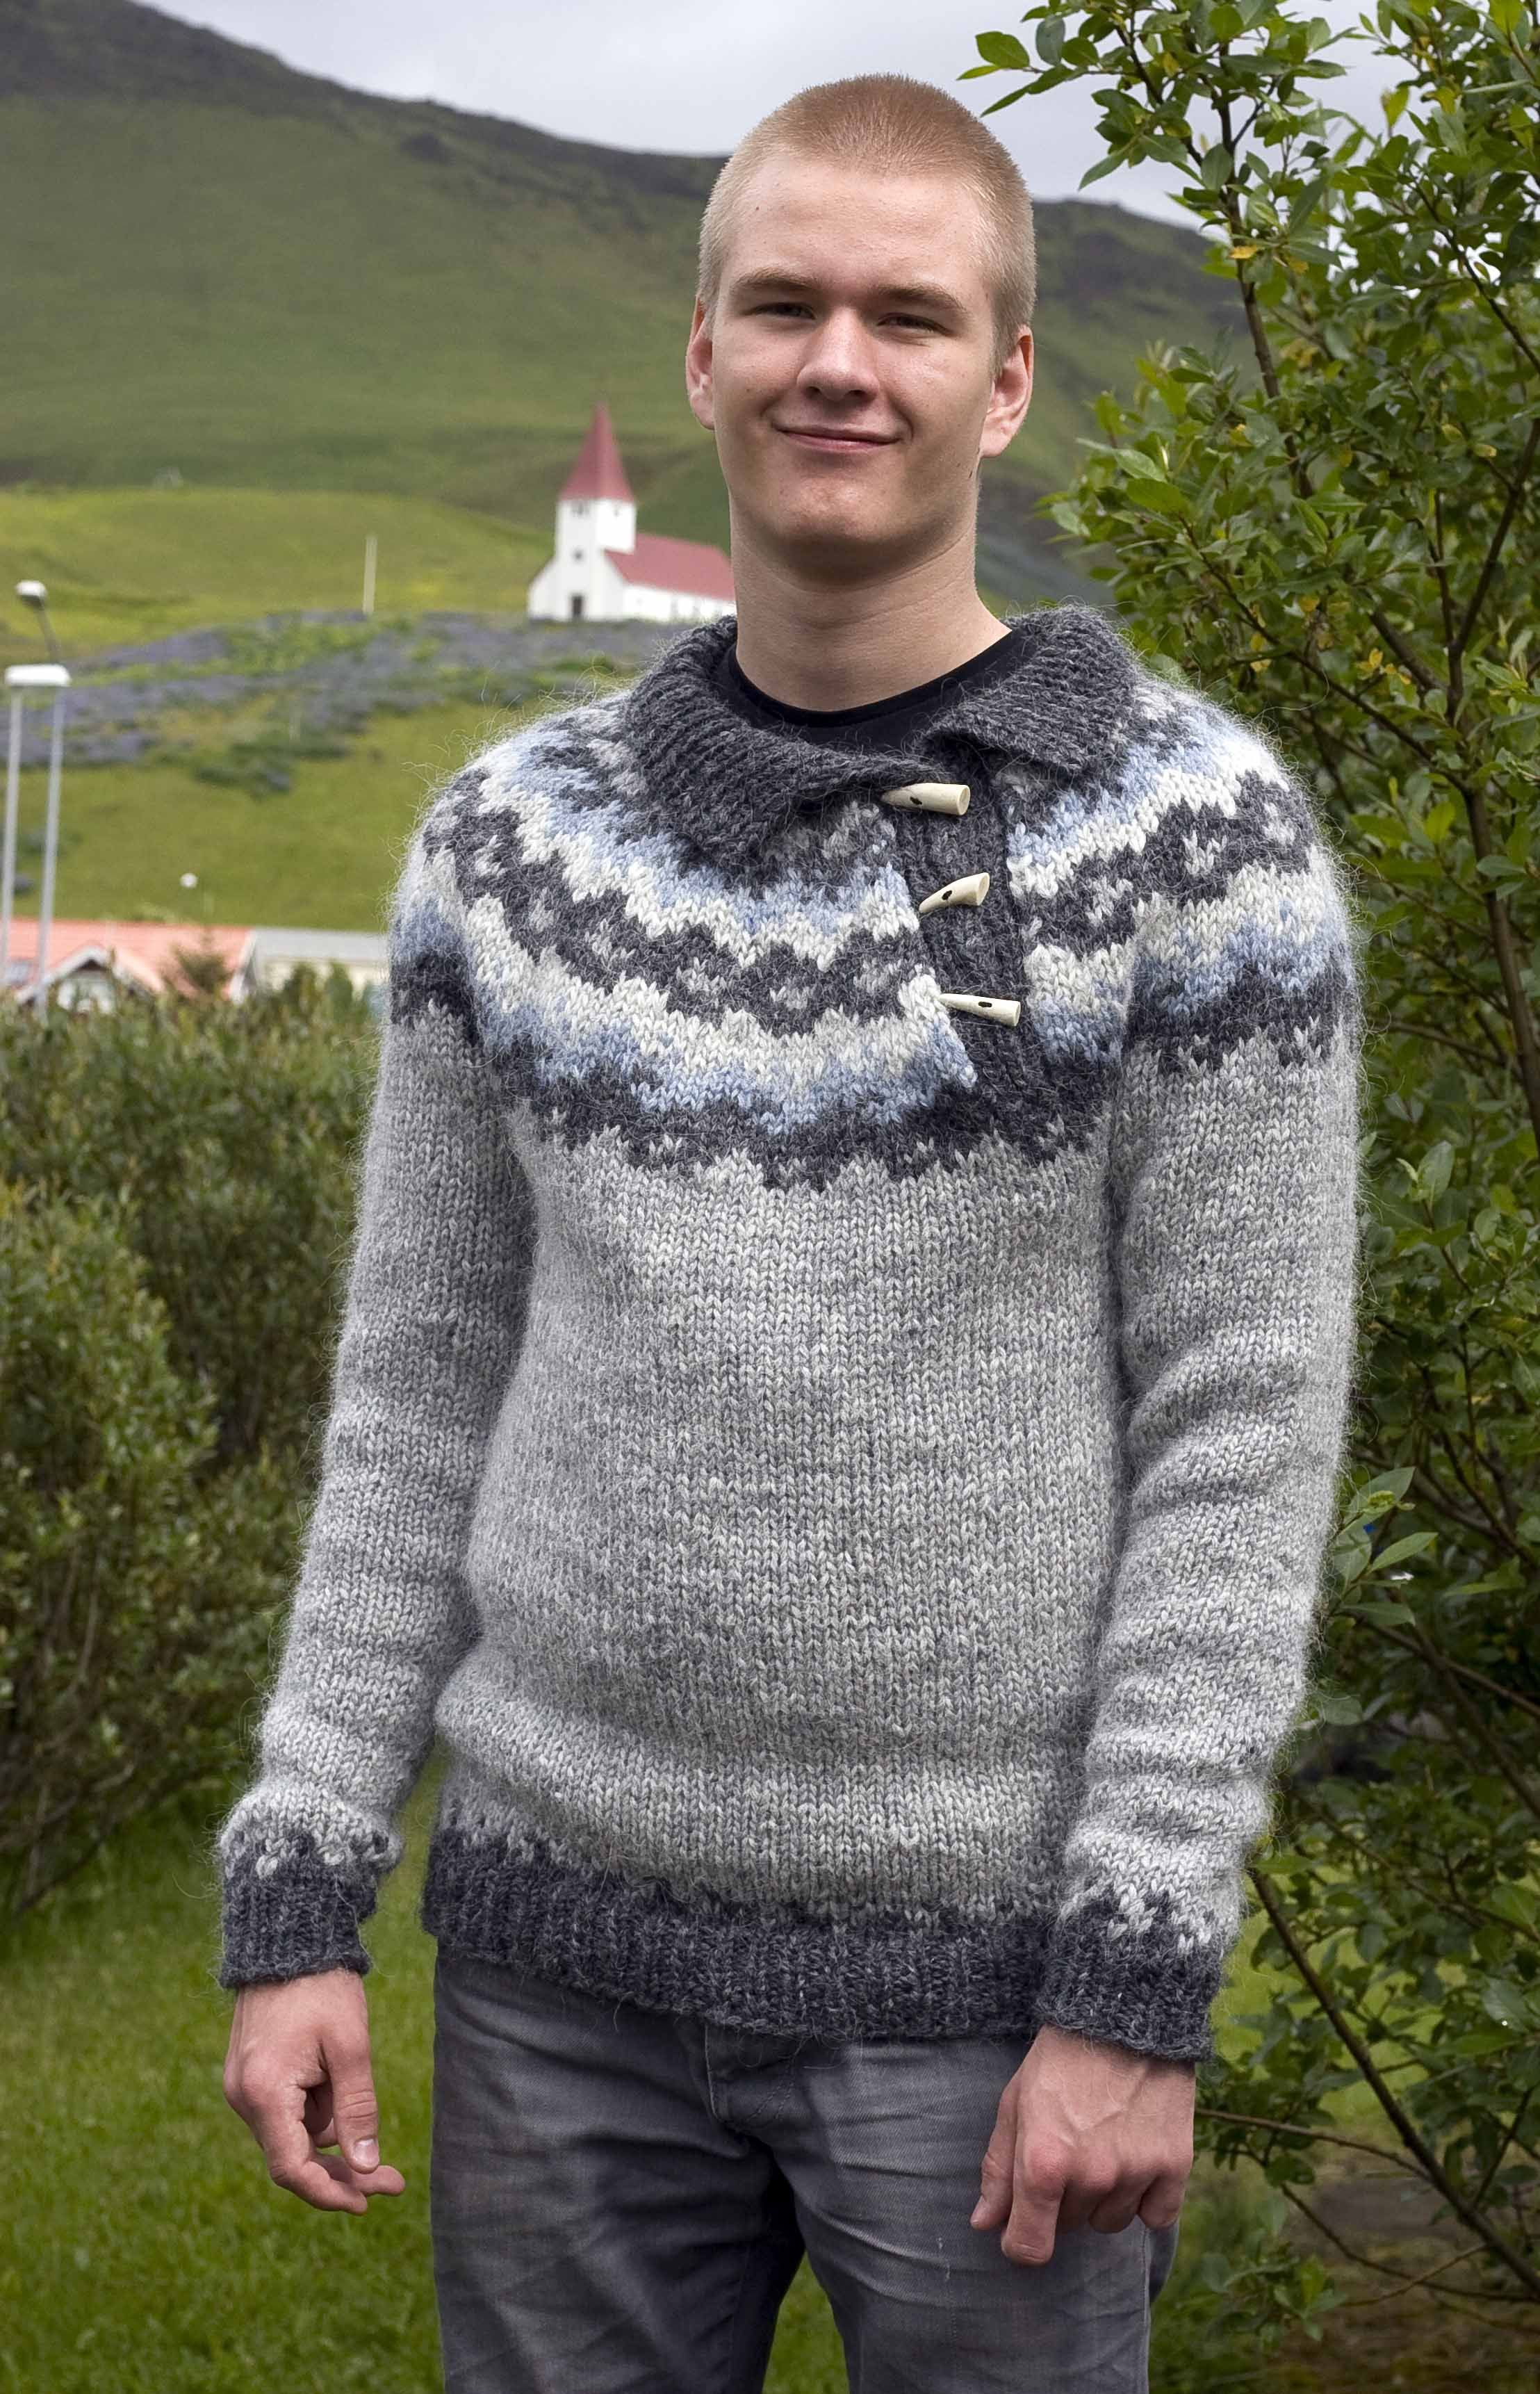 Icelandic Sweater Knitting Pattern : oroi, Icelandic lopi pattern Knitting Pinterest The ...